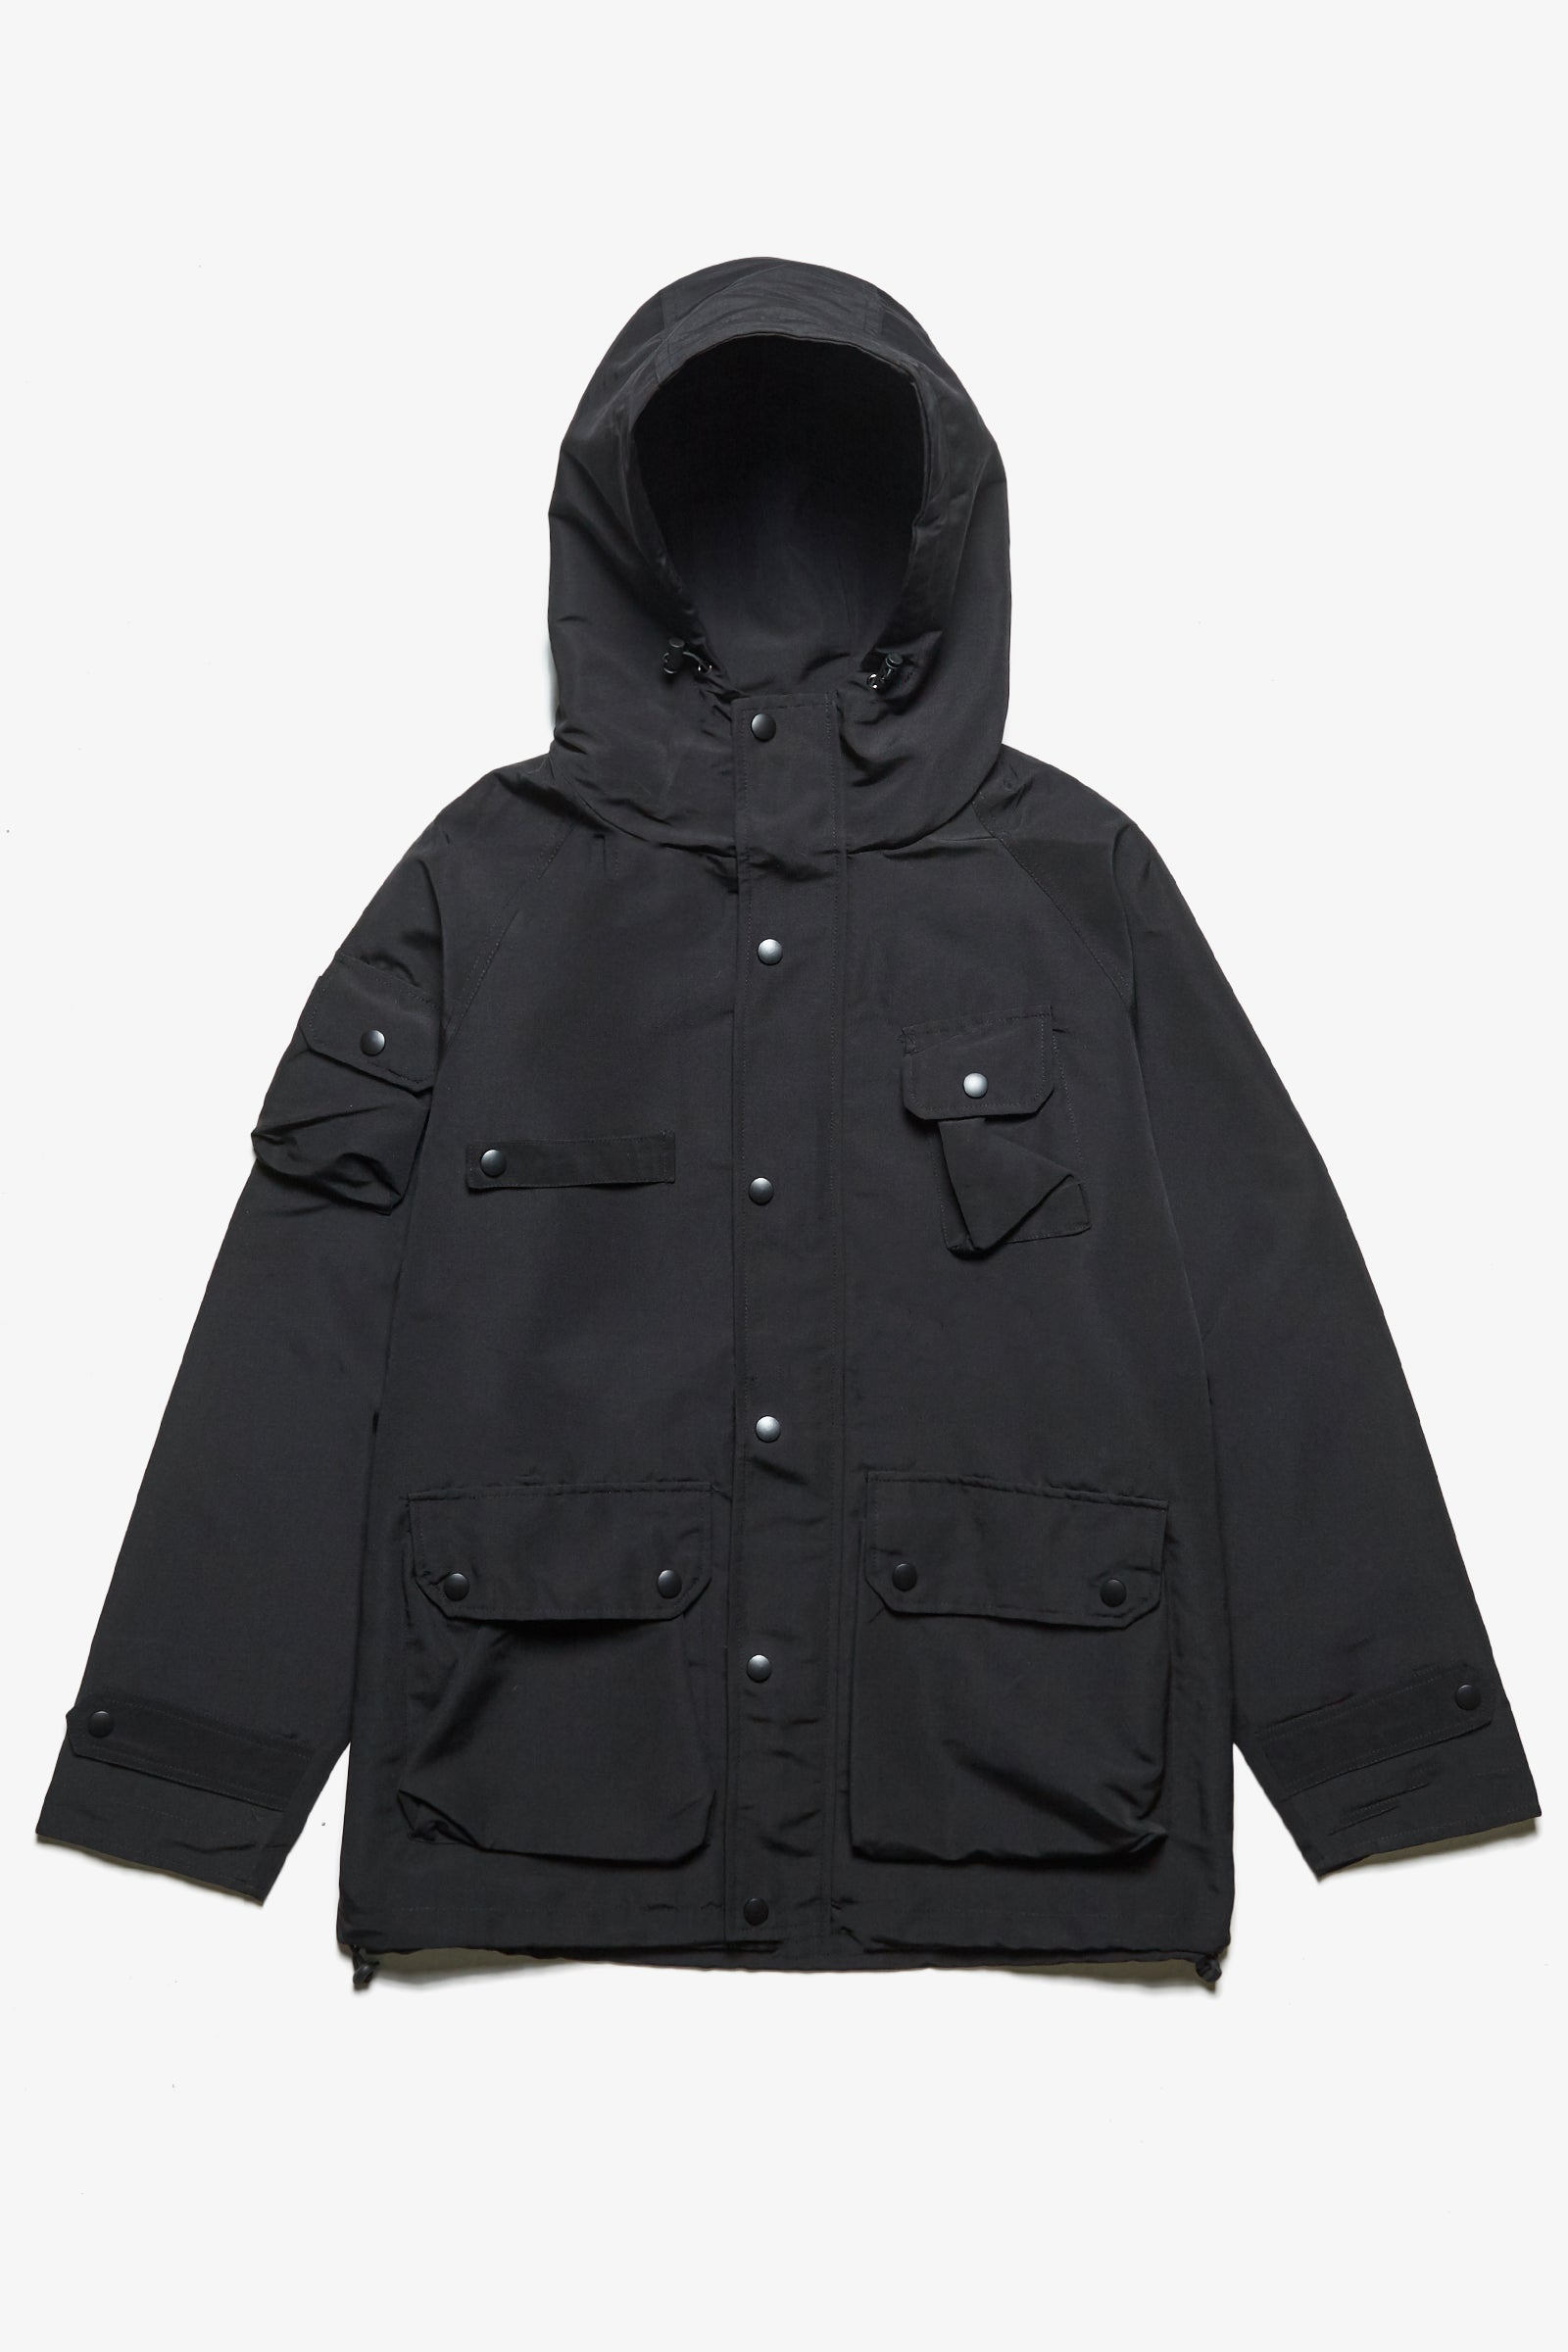 Blacksmith - Tactical Mountain Parka - Black